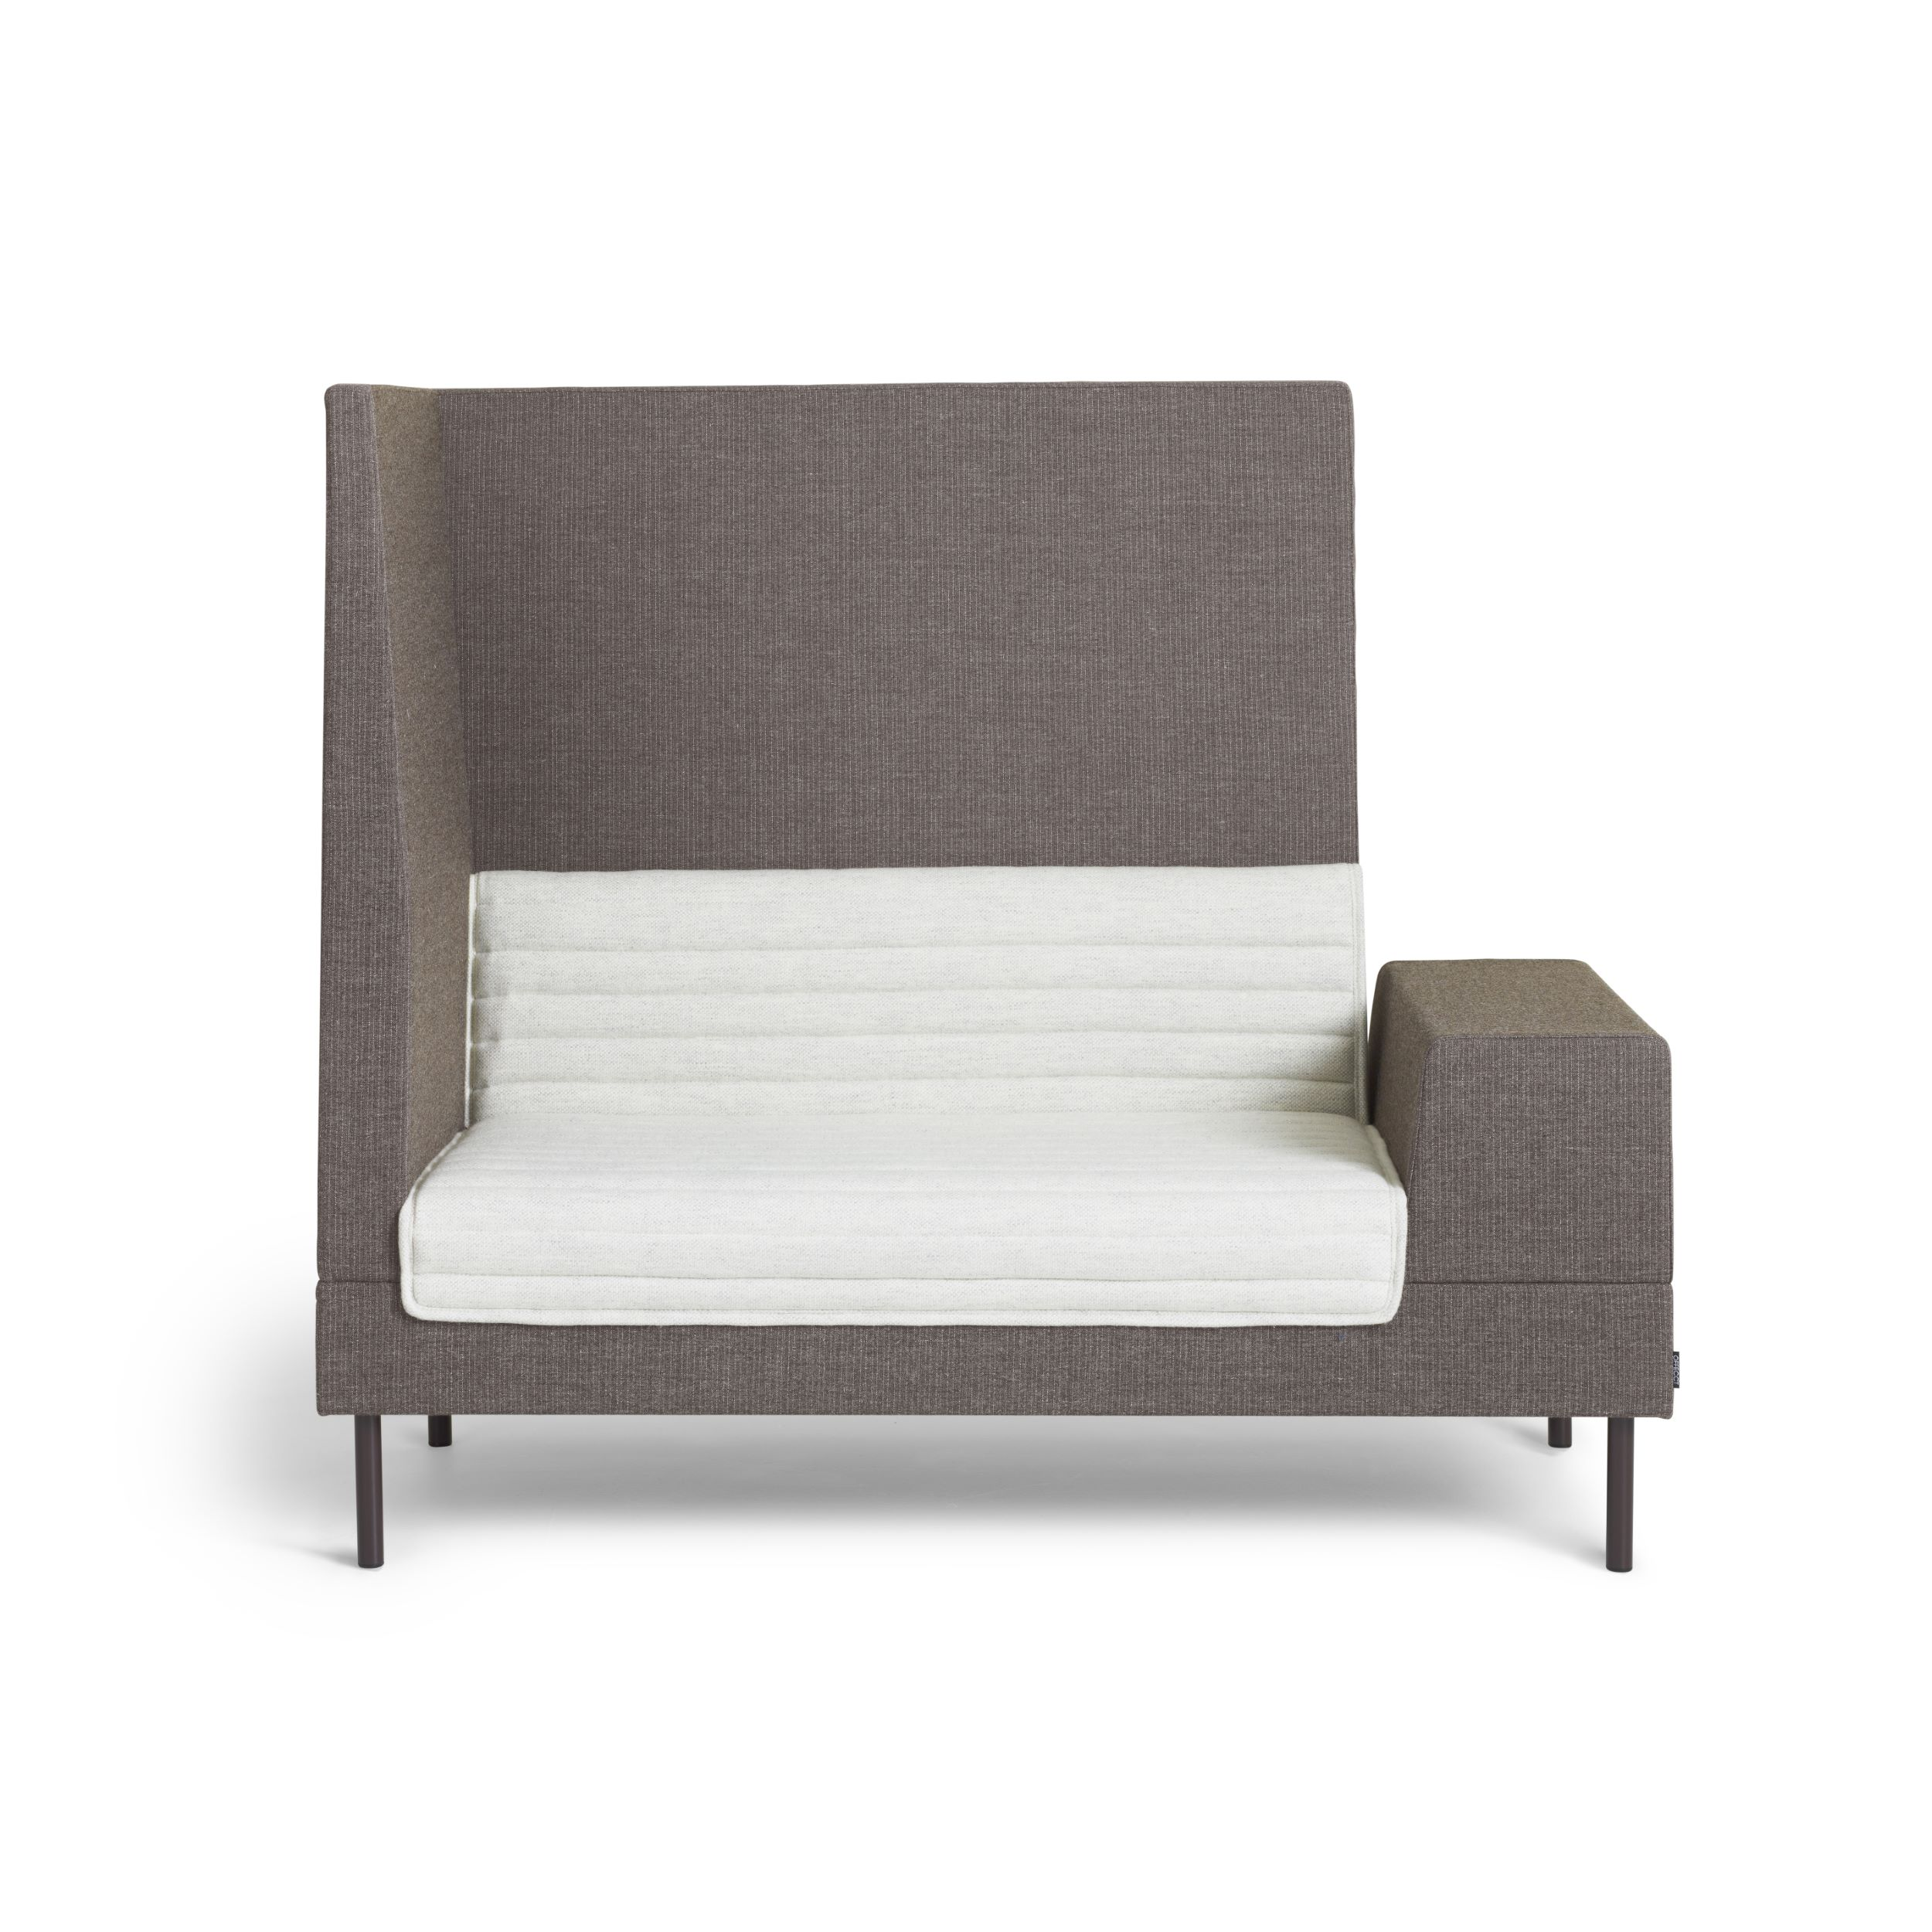 Seats En Sofa Arnhem Smallroom Lounge Seating By Ineke Hans Product Family